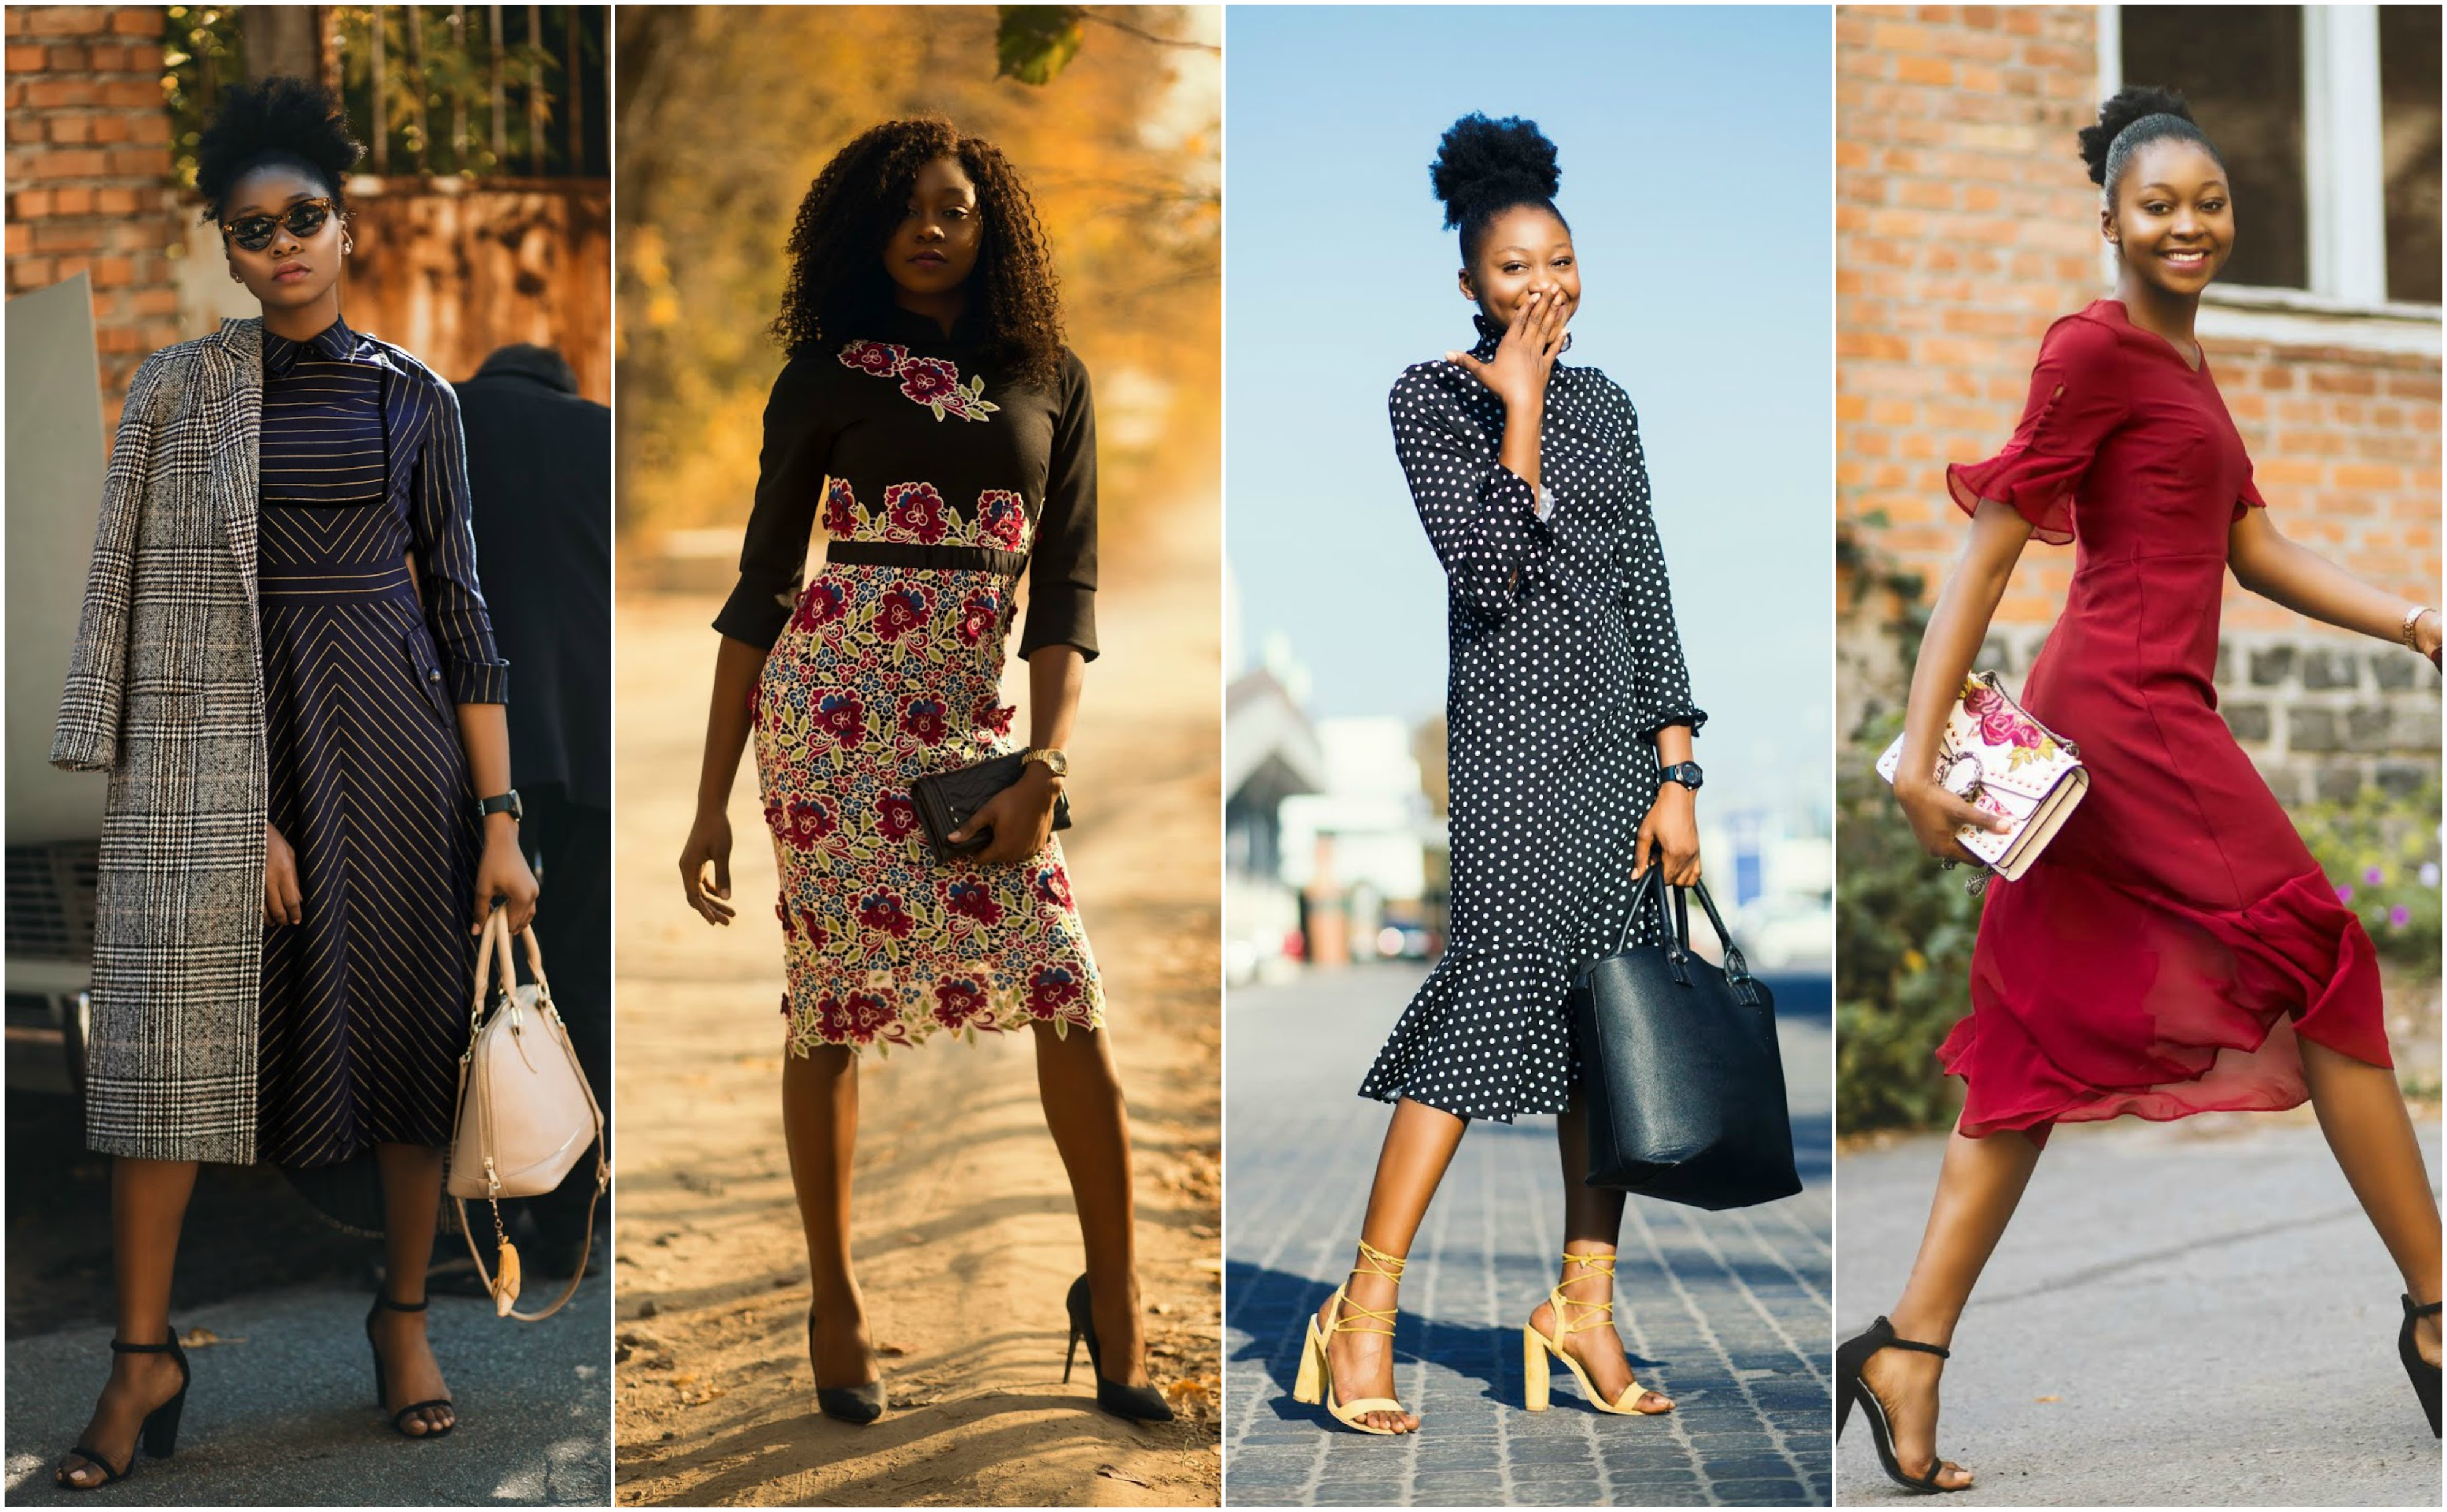 8 DRESSES TO WEAR TO CHURCH ON EASTER SUNDAY 2019